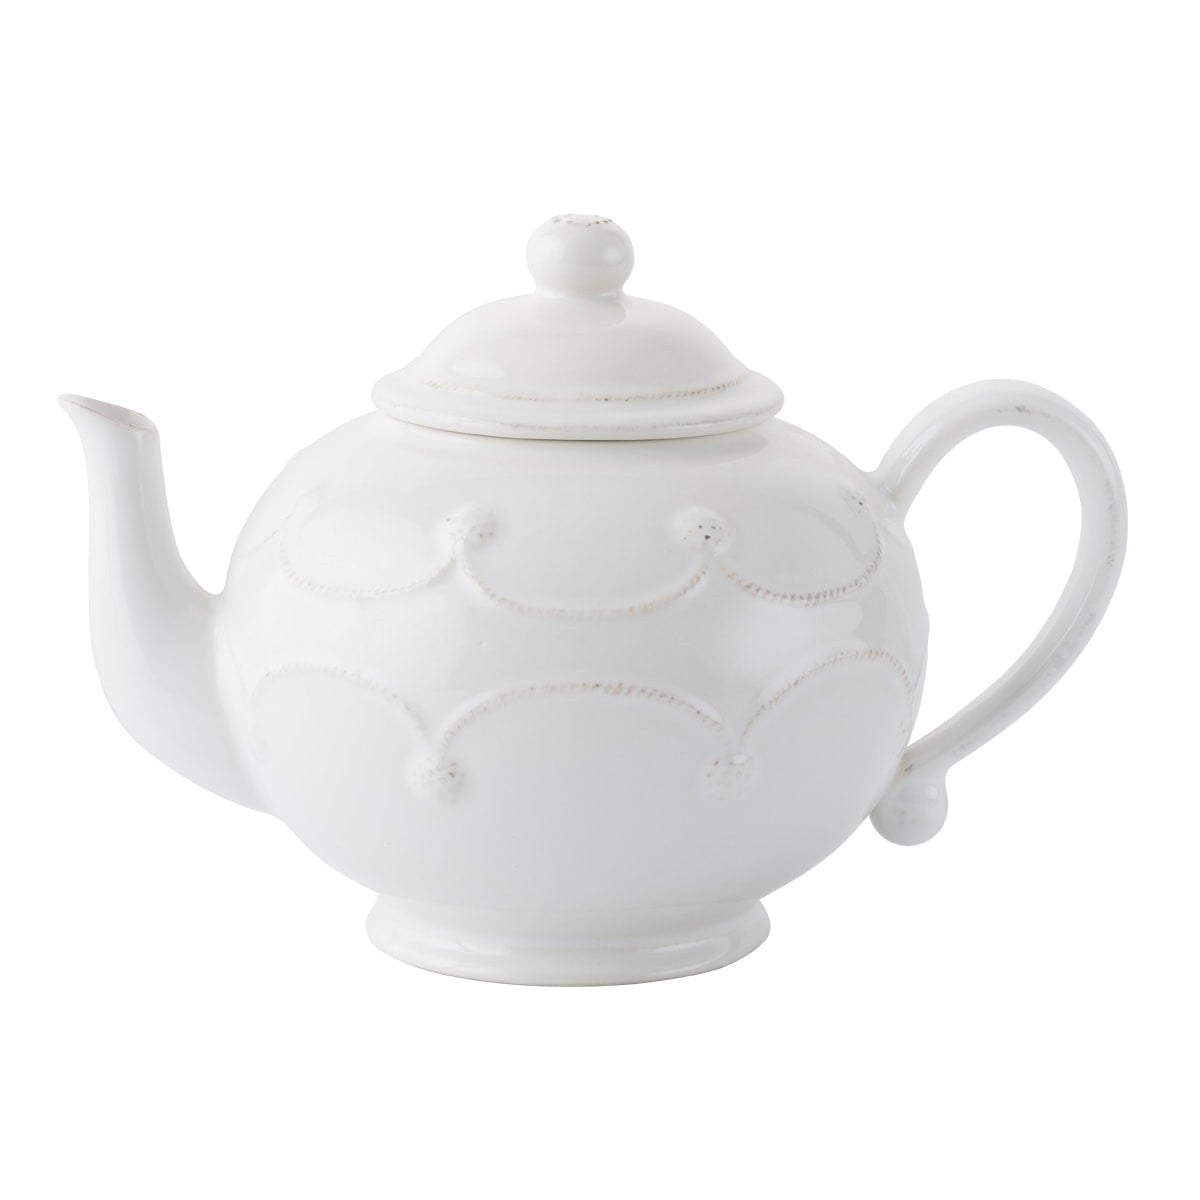 Juliska - Berry & Thread Whitewash Teapot